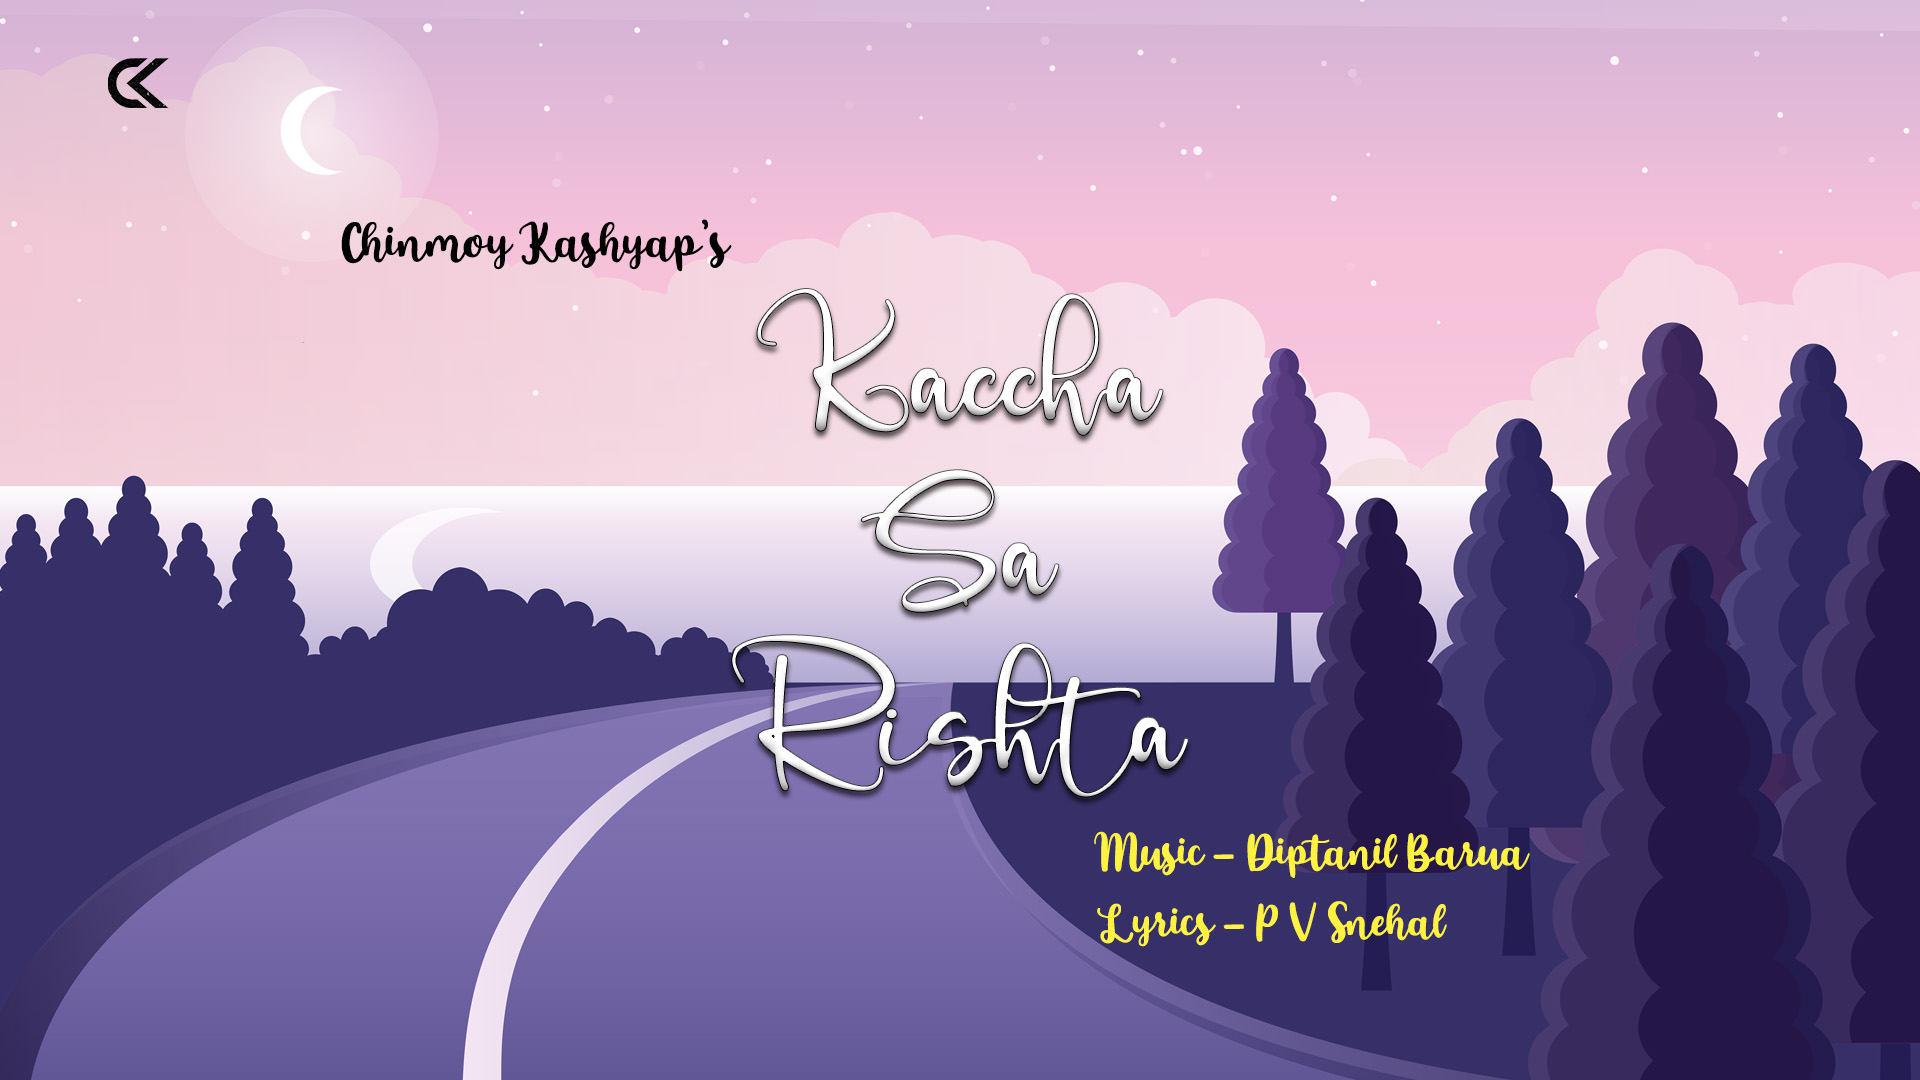 Director Chinmoy Kashyap recently took to his social media sharing his first-ever music track titled Kaccha Sa Rishta